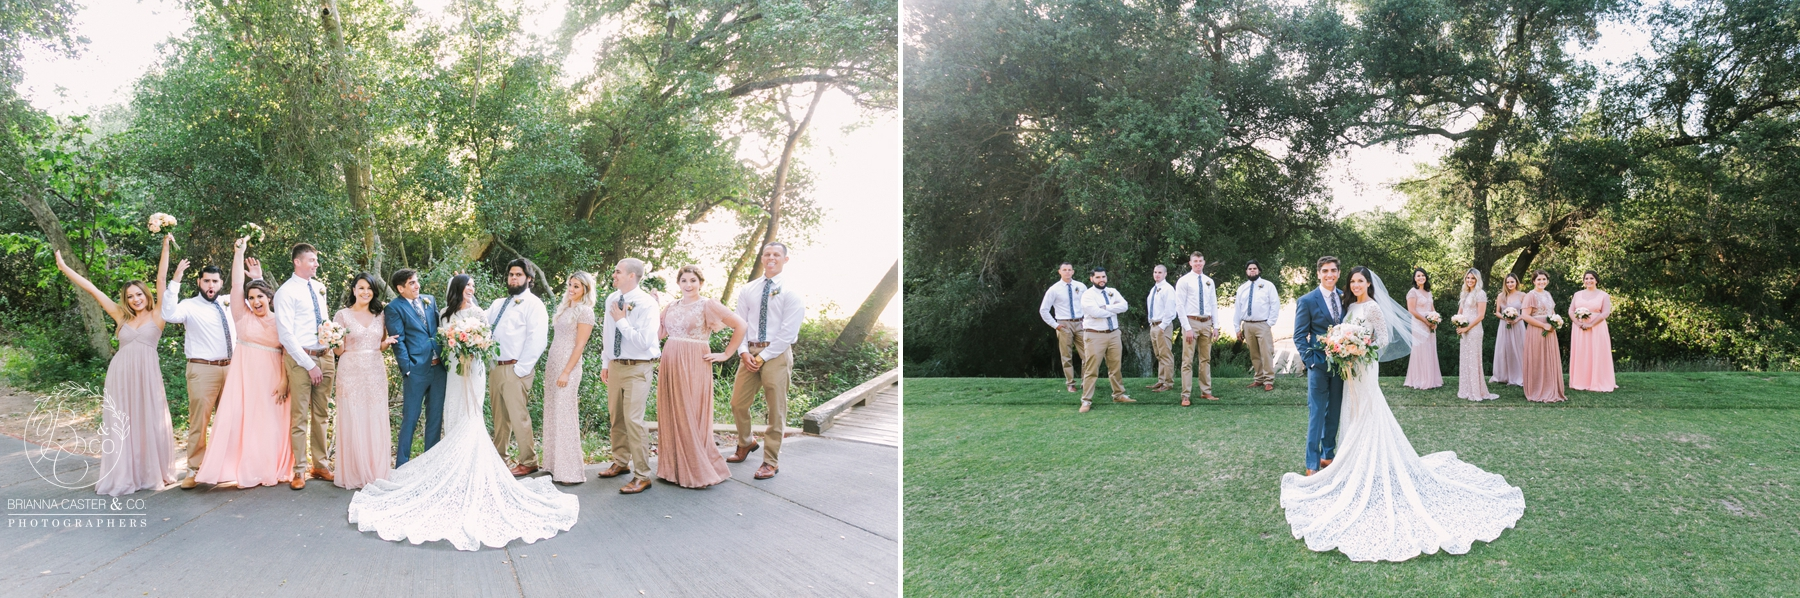 Cross-Creek-Country-Club-Wedding-Brianna-Caster-and-Co-Photographers-17